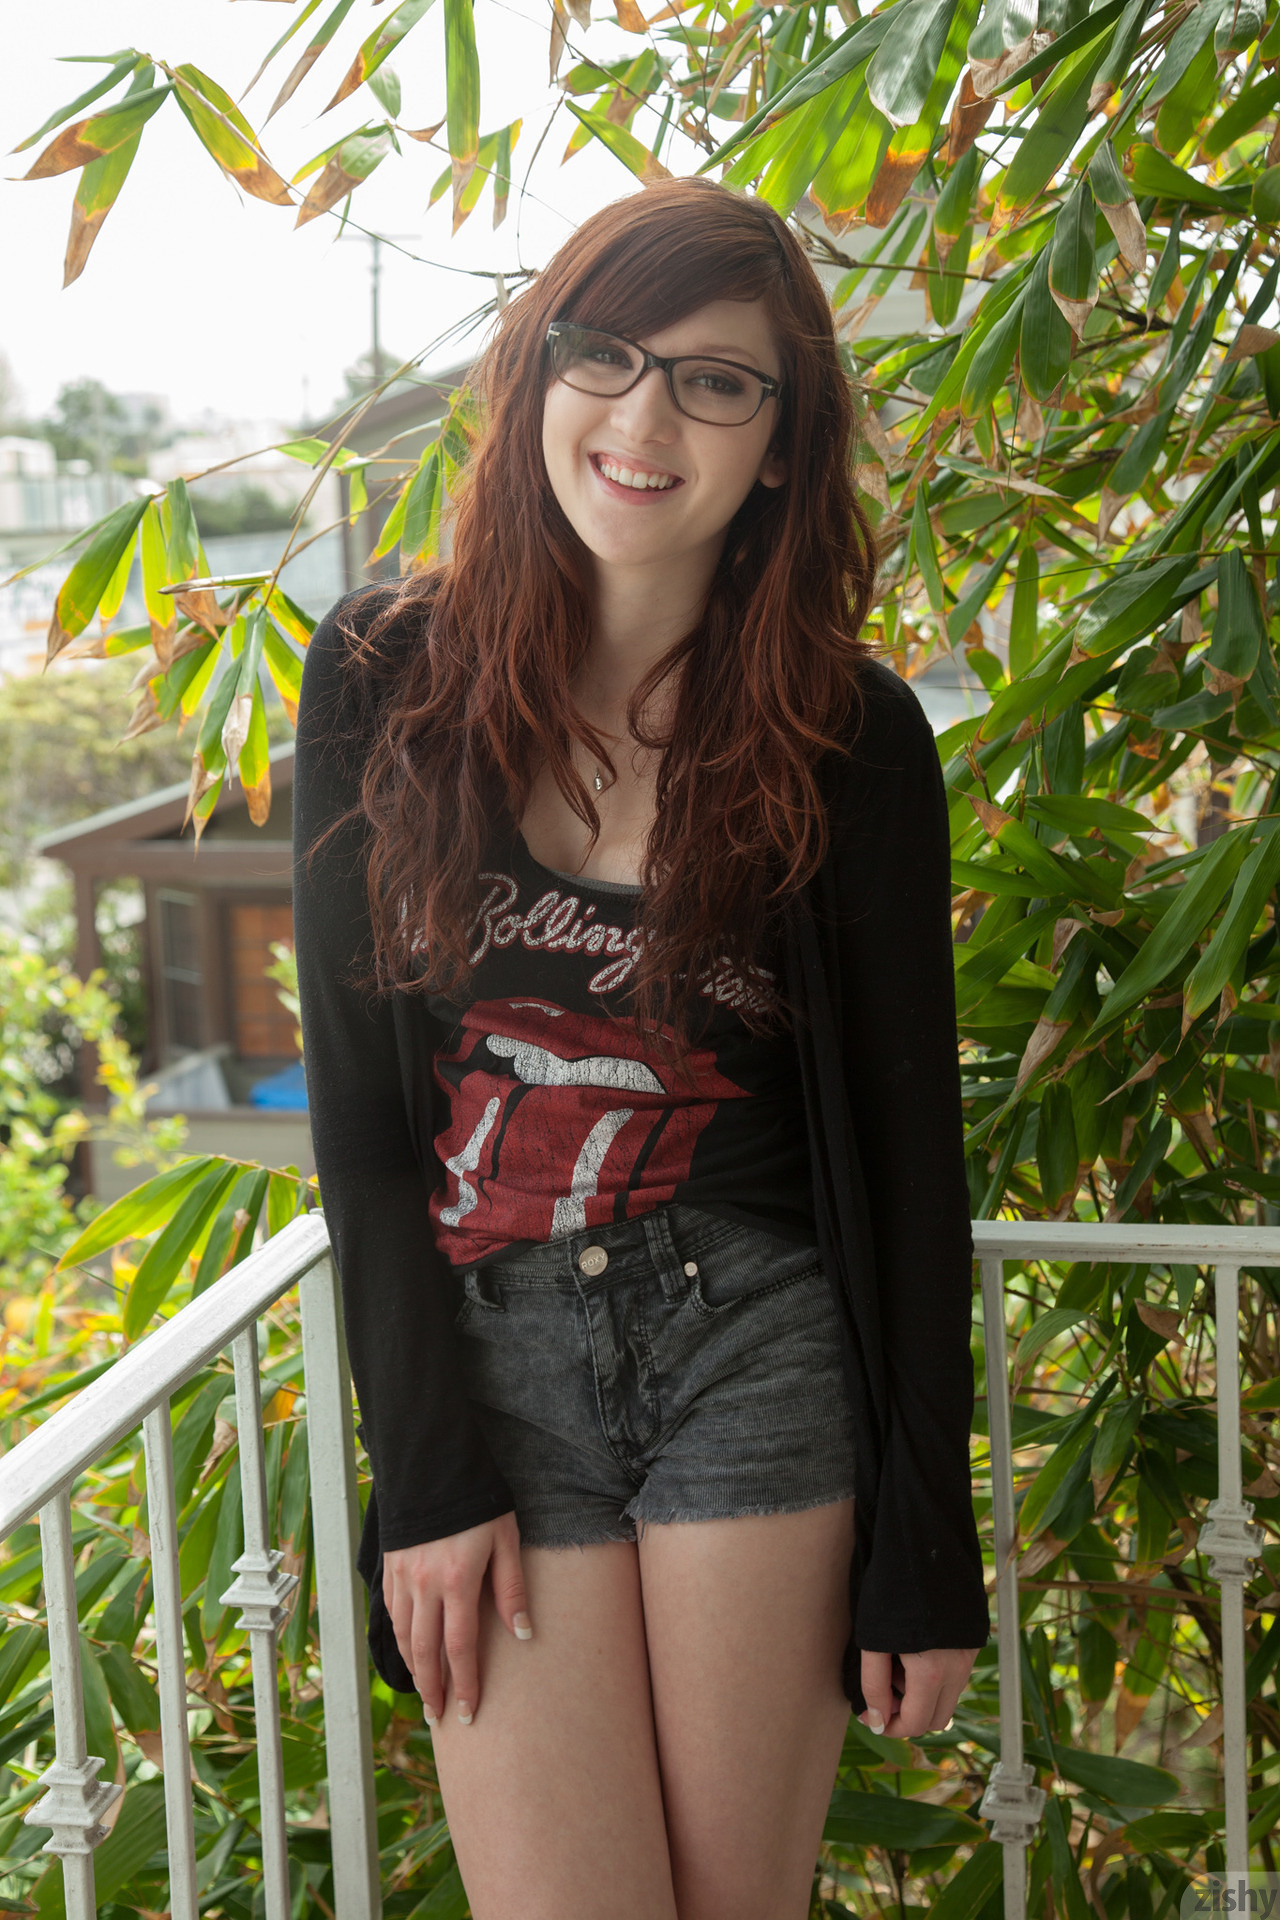 18 curly cutie teen and 76 old granppa 69 7